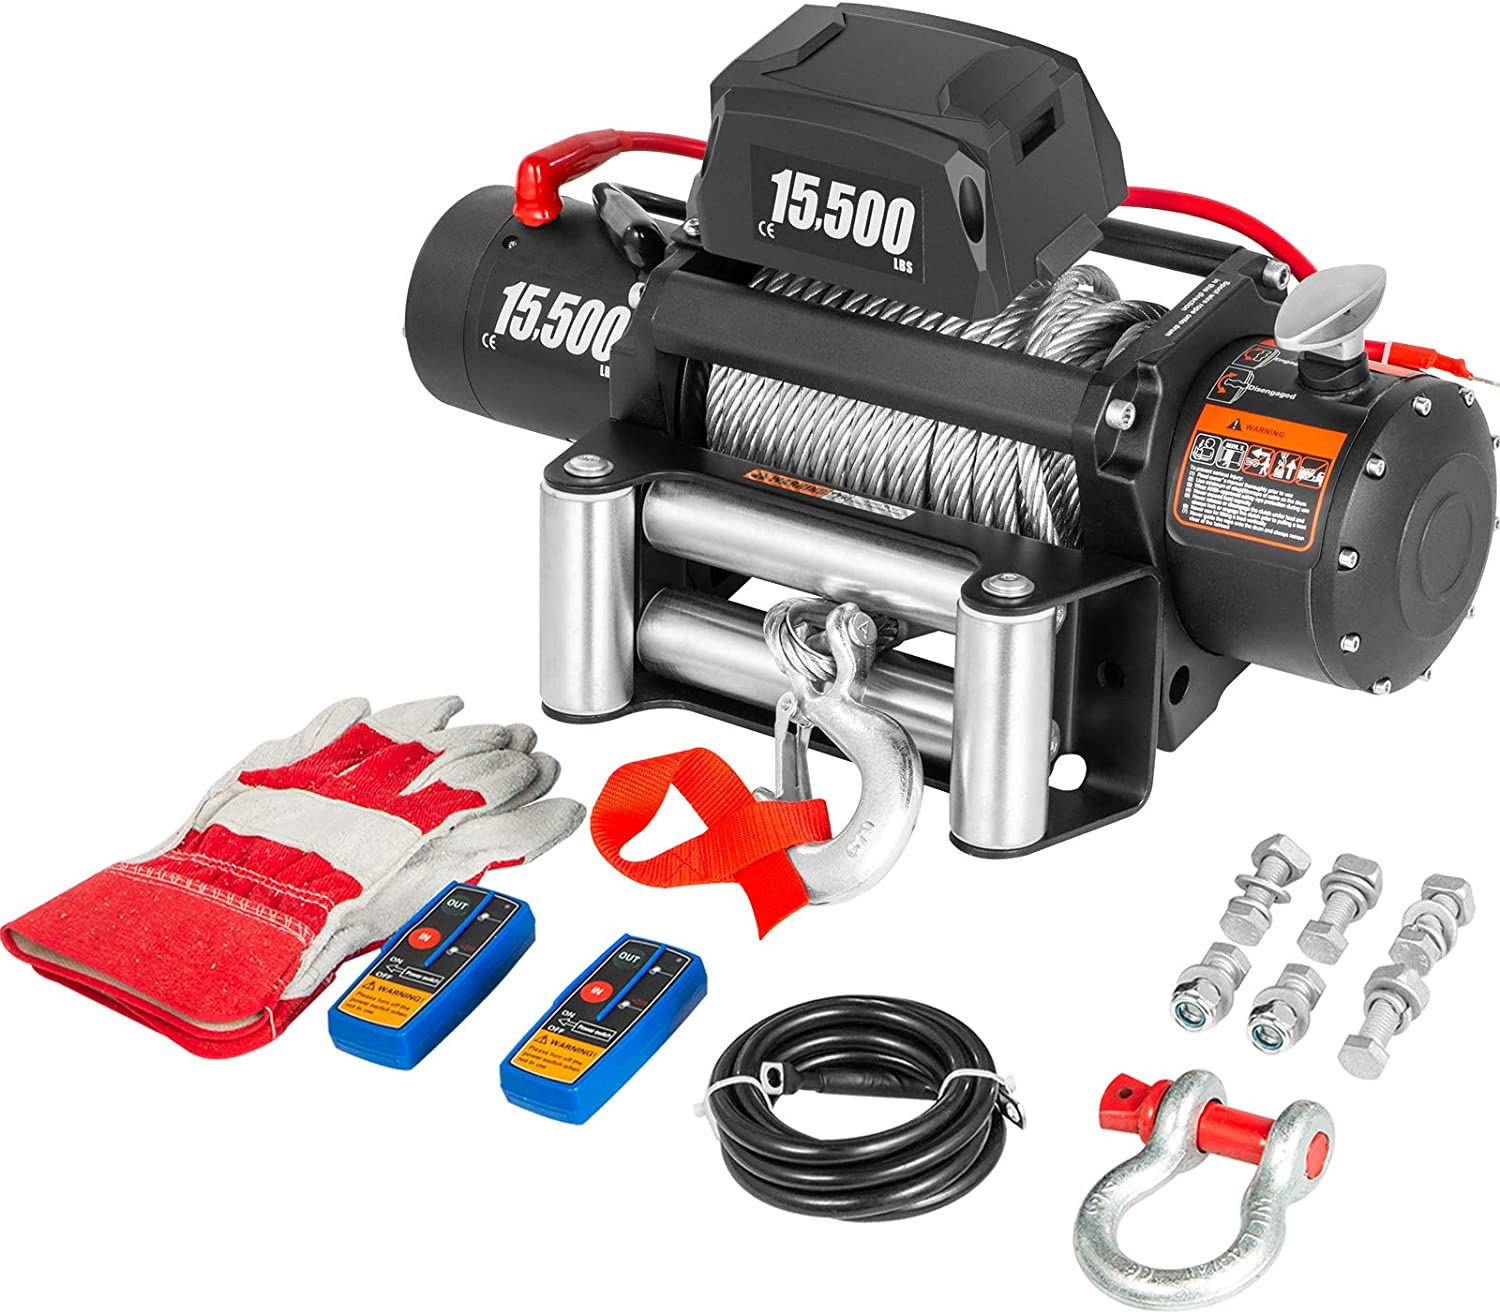 VEVOR Truck Winch NEW 15500Ibs Electric Cable Spring new work 12V 93.5ft Steel